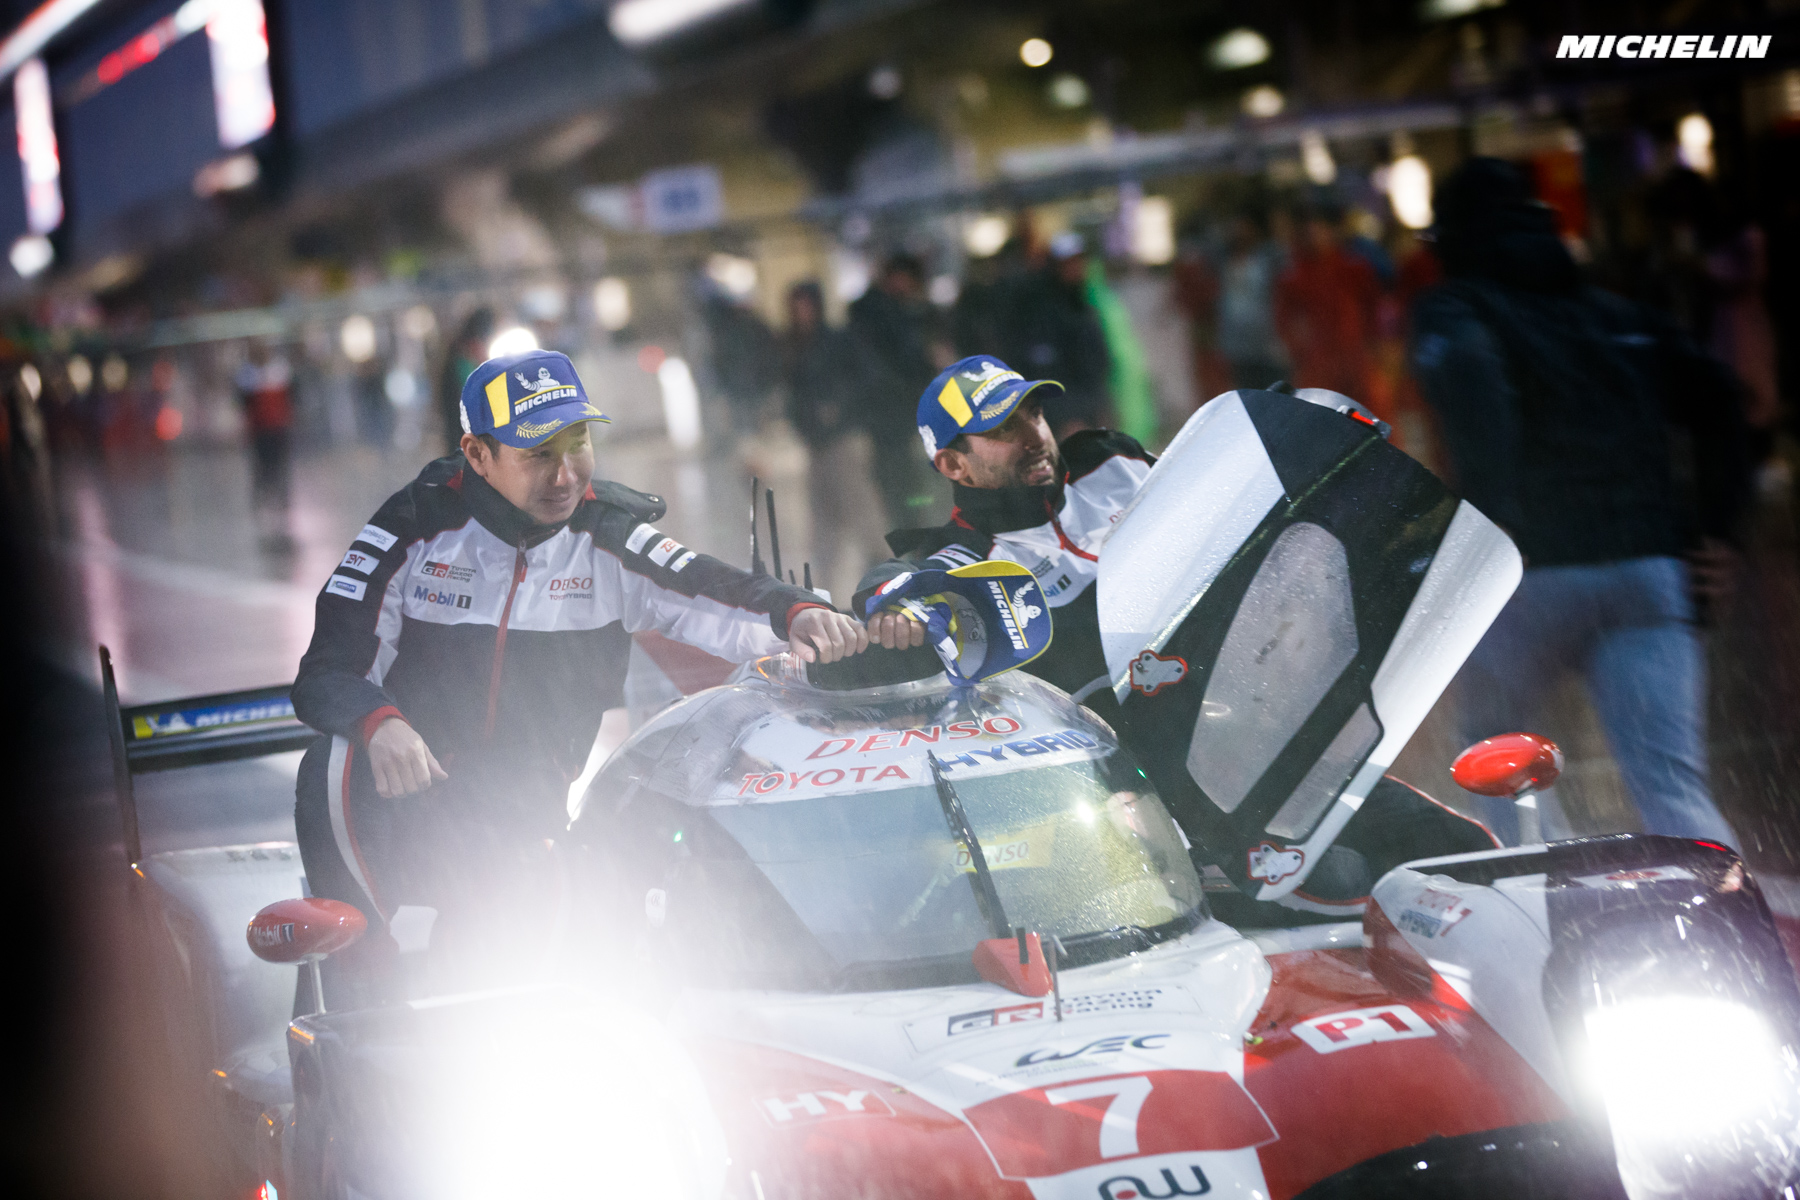 Toyota and Michelin win in rainy Shanghai